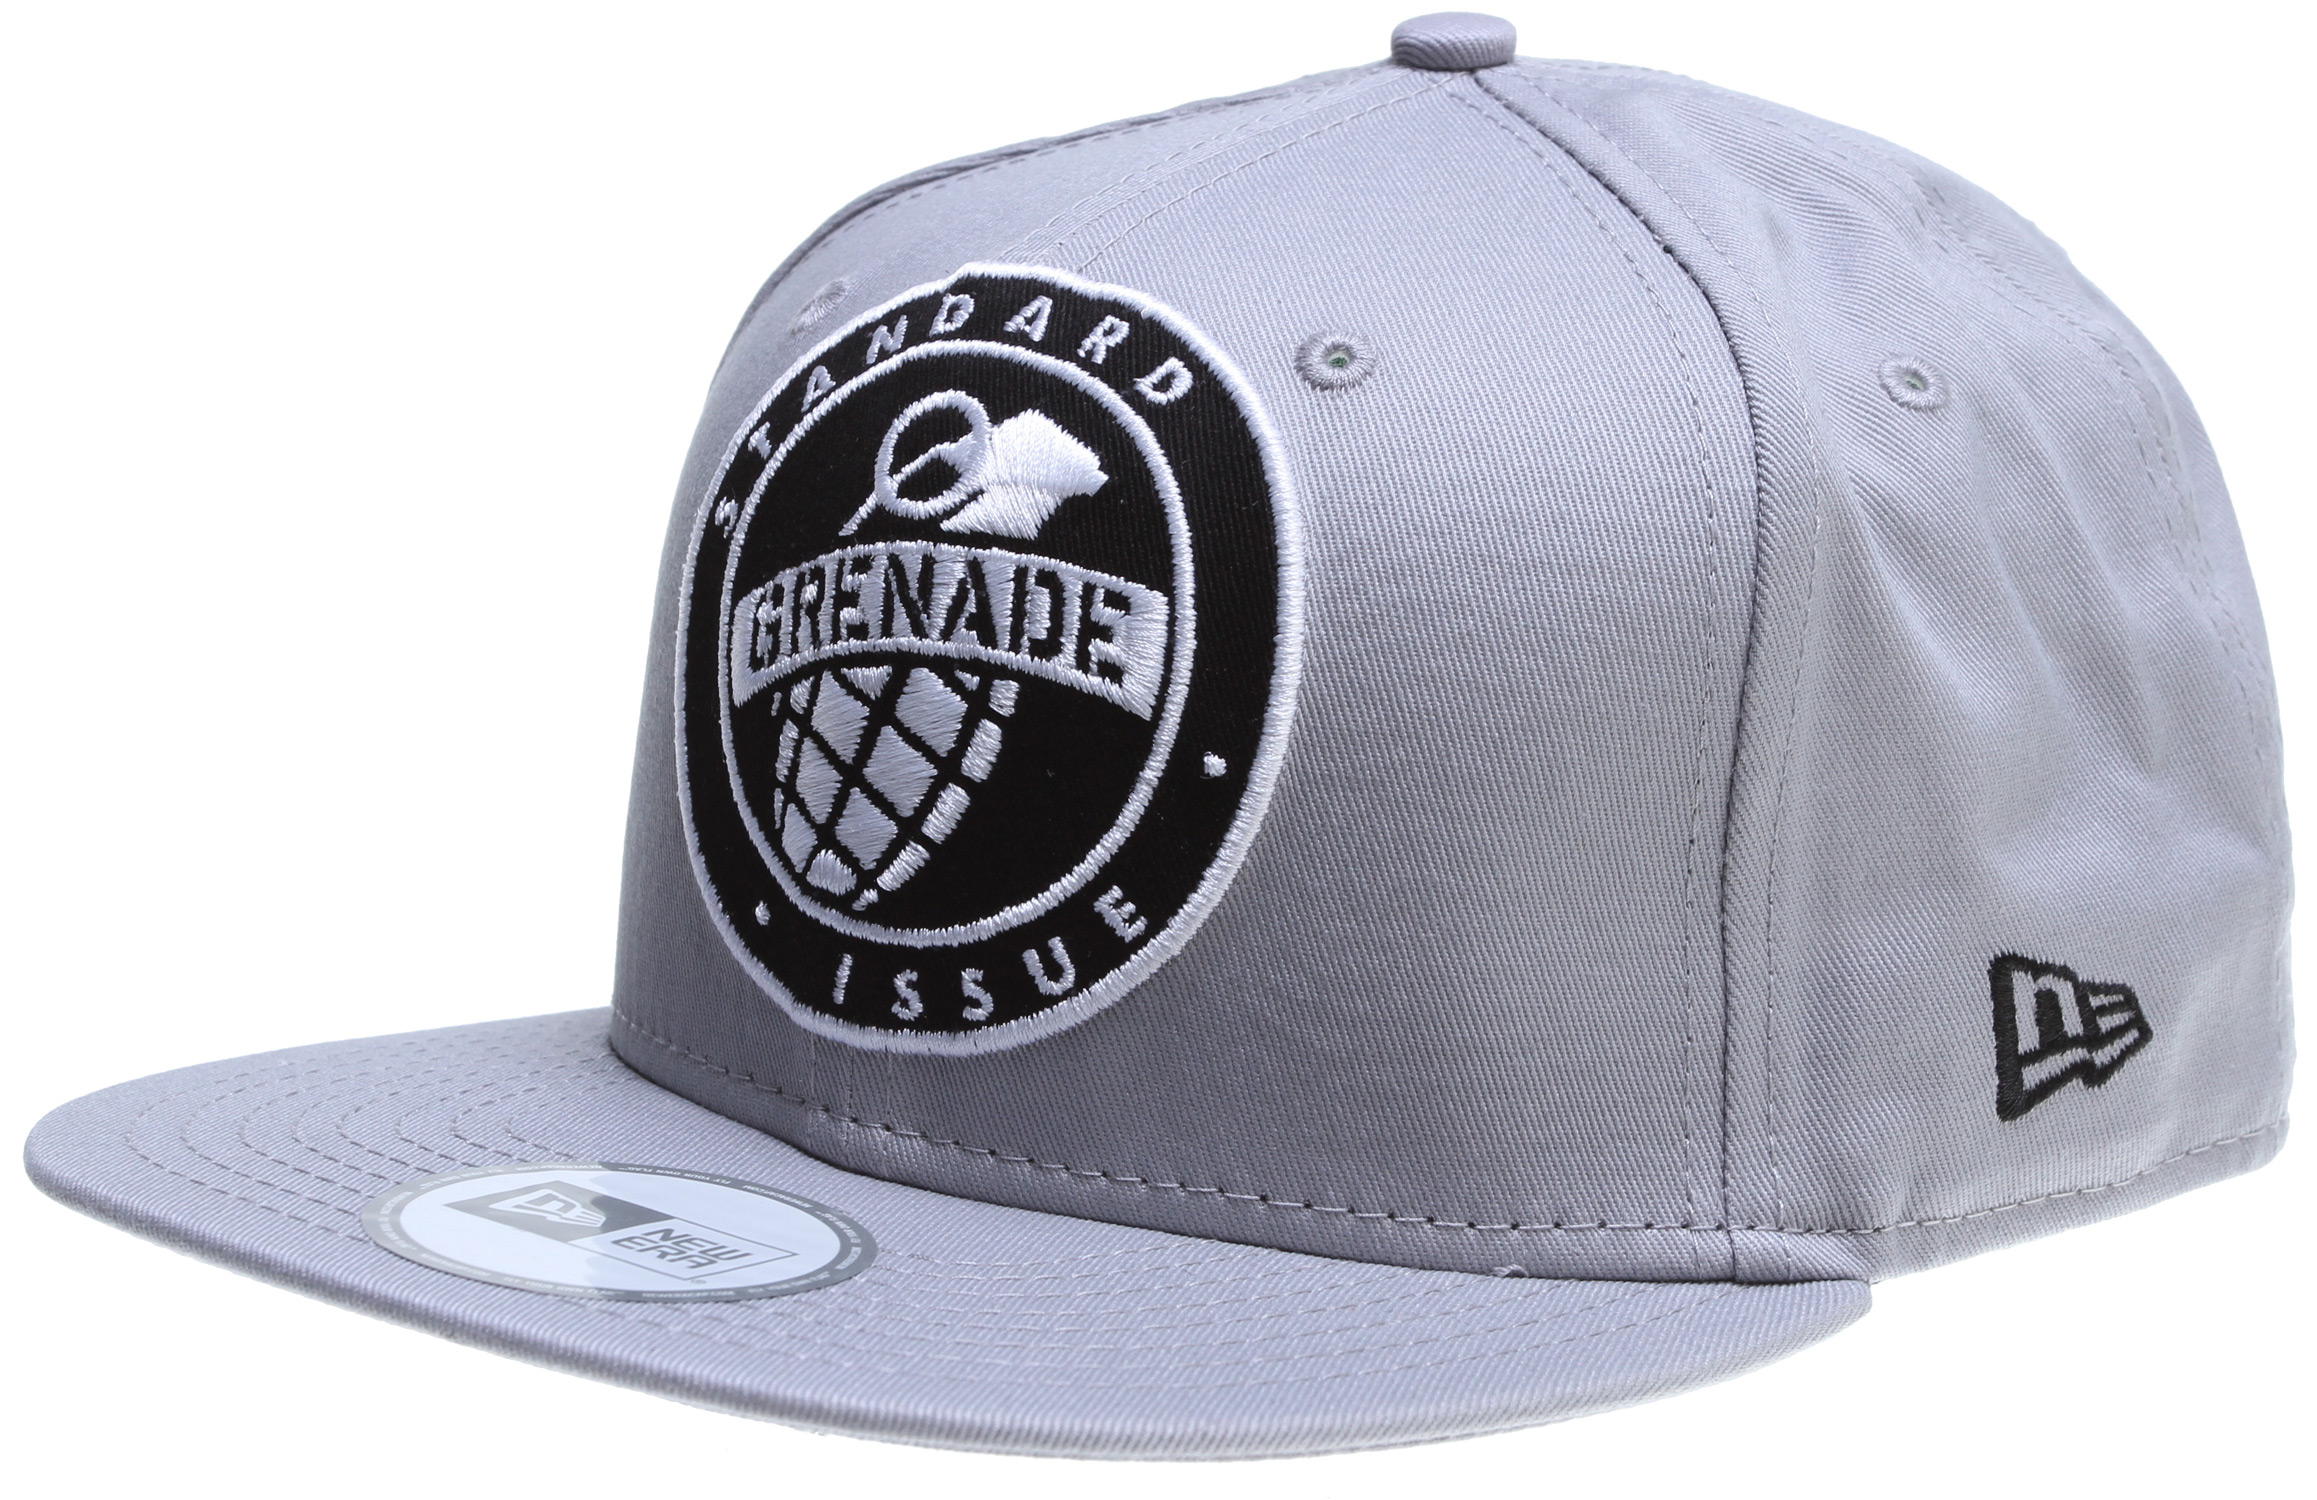 Key Features of the Grenade Emblem Cap: 100% Cotton NEW ERA SNAP BACK Embroidered Logo - $20.95